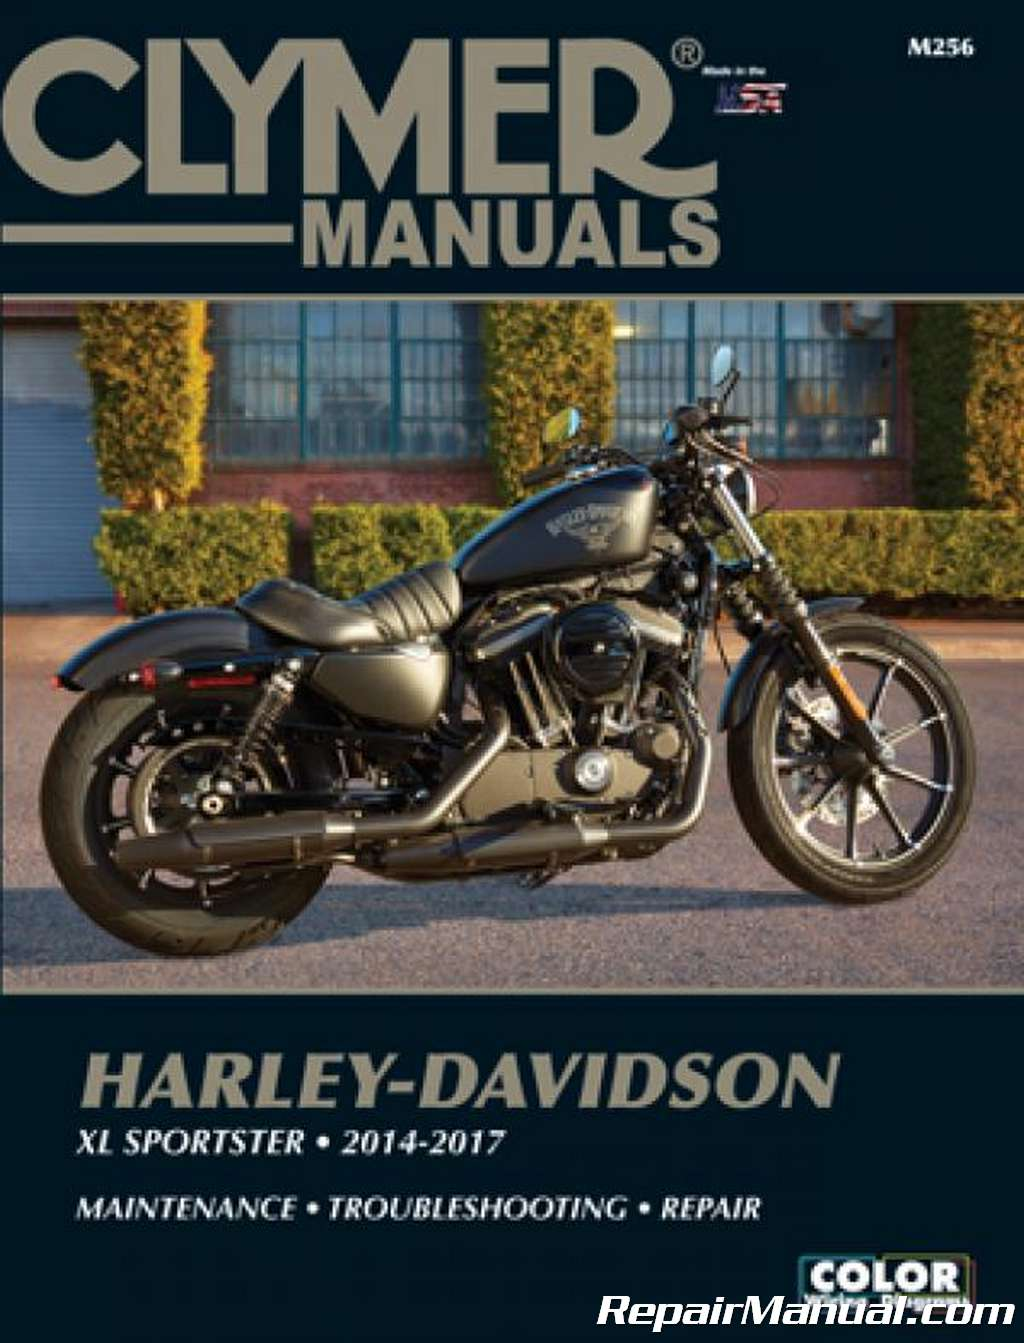 2014 - 2017 Harley-Davidson XL Sportster Motorcycle Repair Service Manual  by Clymer